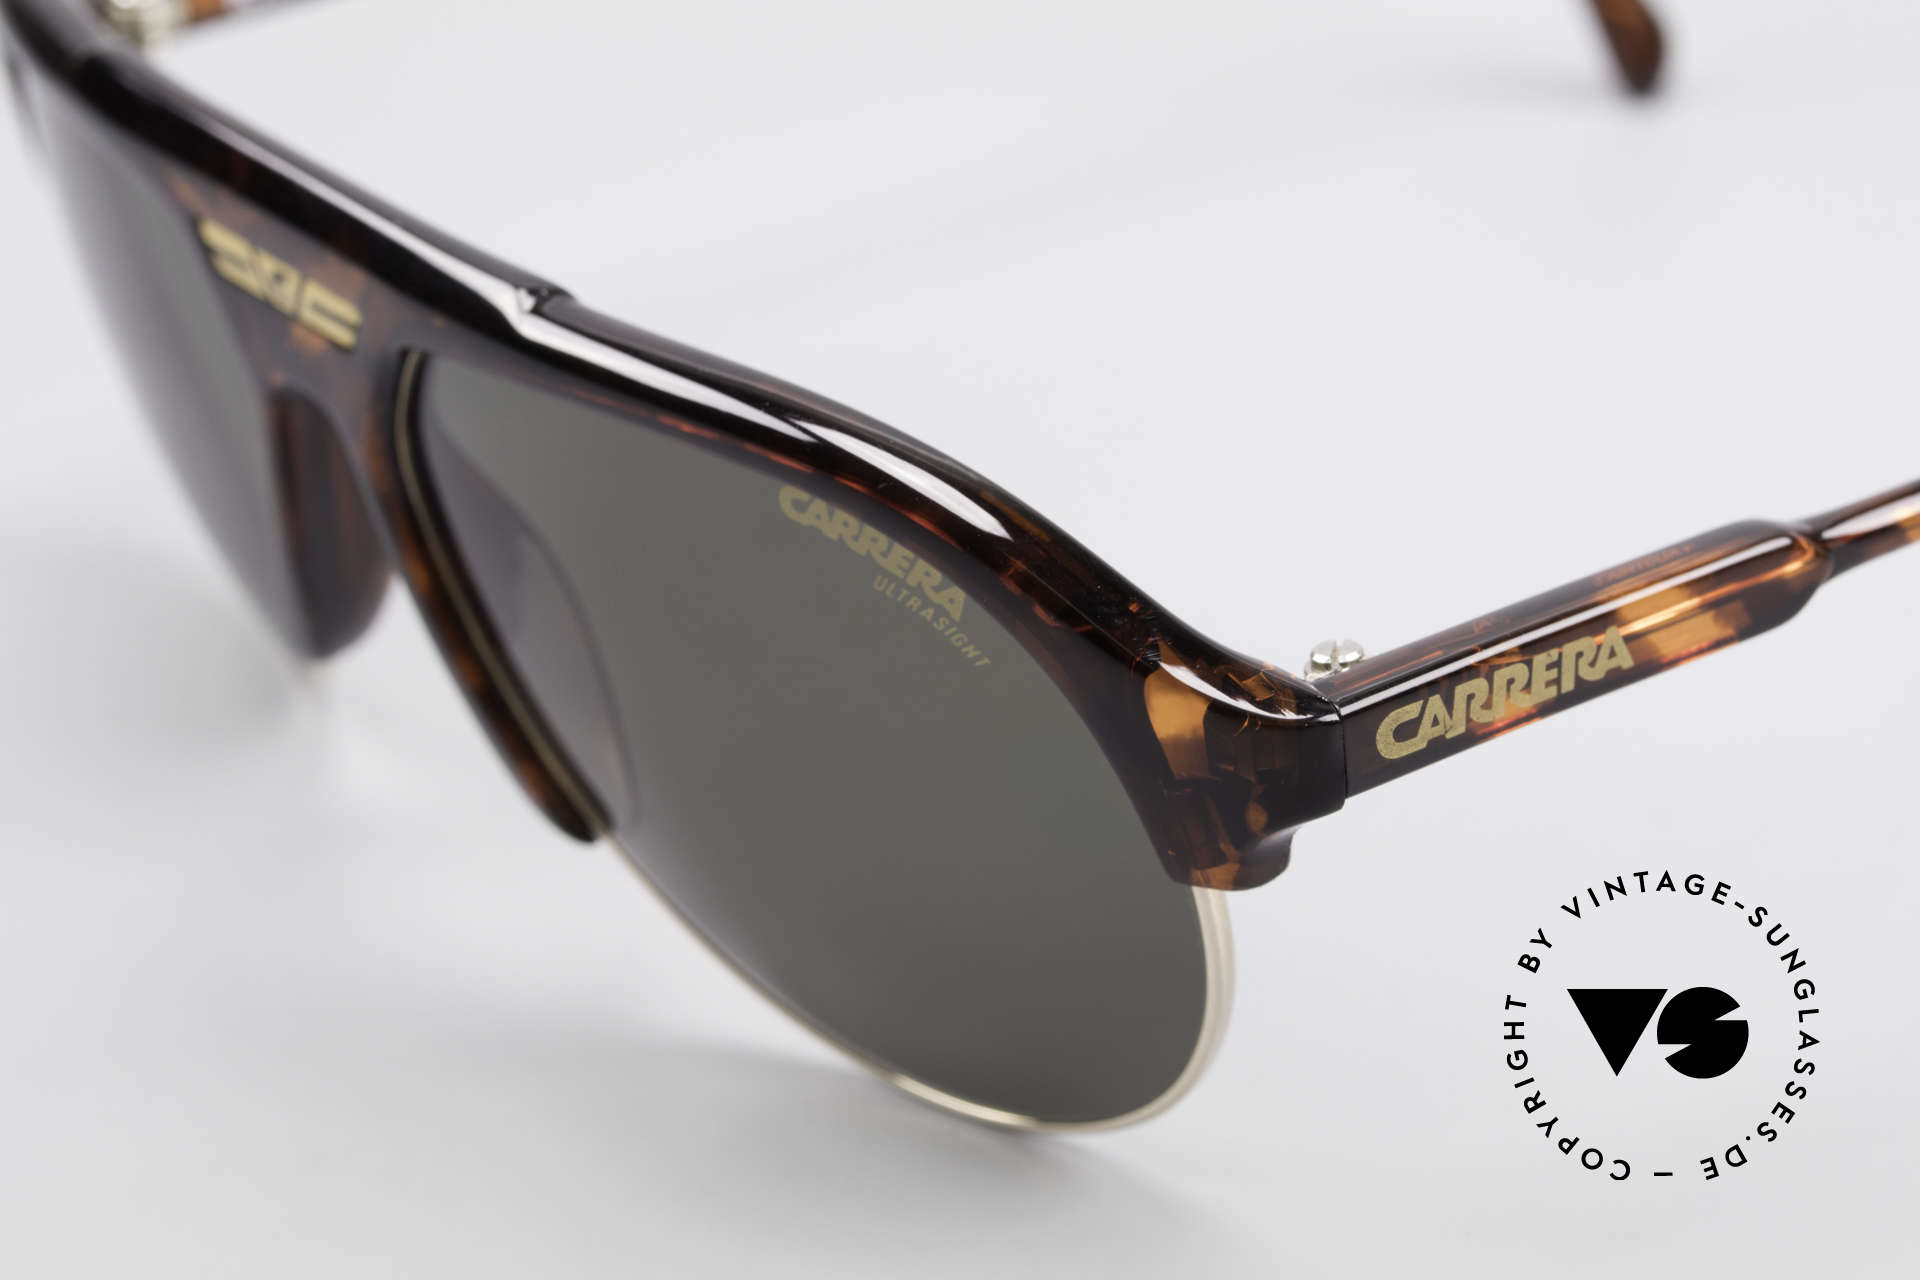 Carrera 5433 Aviator Sunglasses Men 90's, new old stock (like all our vintage Carrera sunglasses), Made for Men